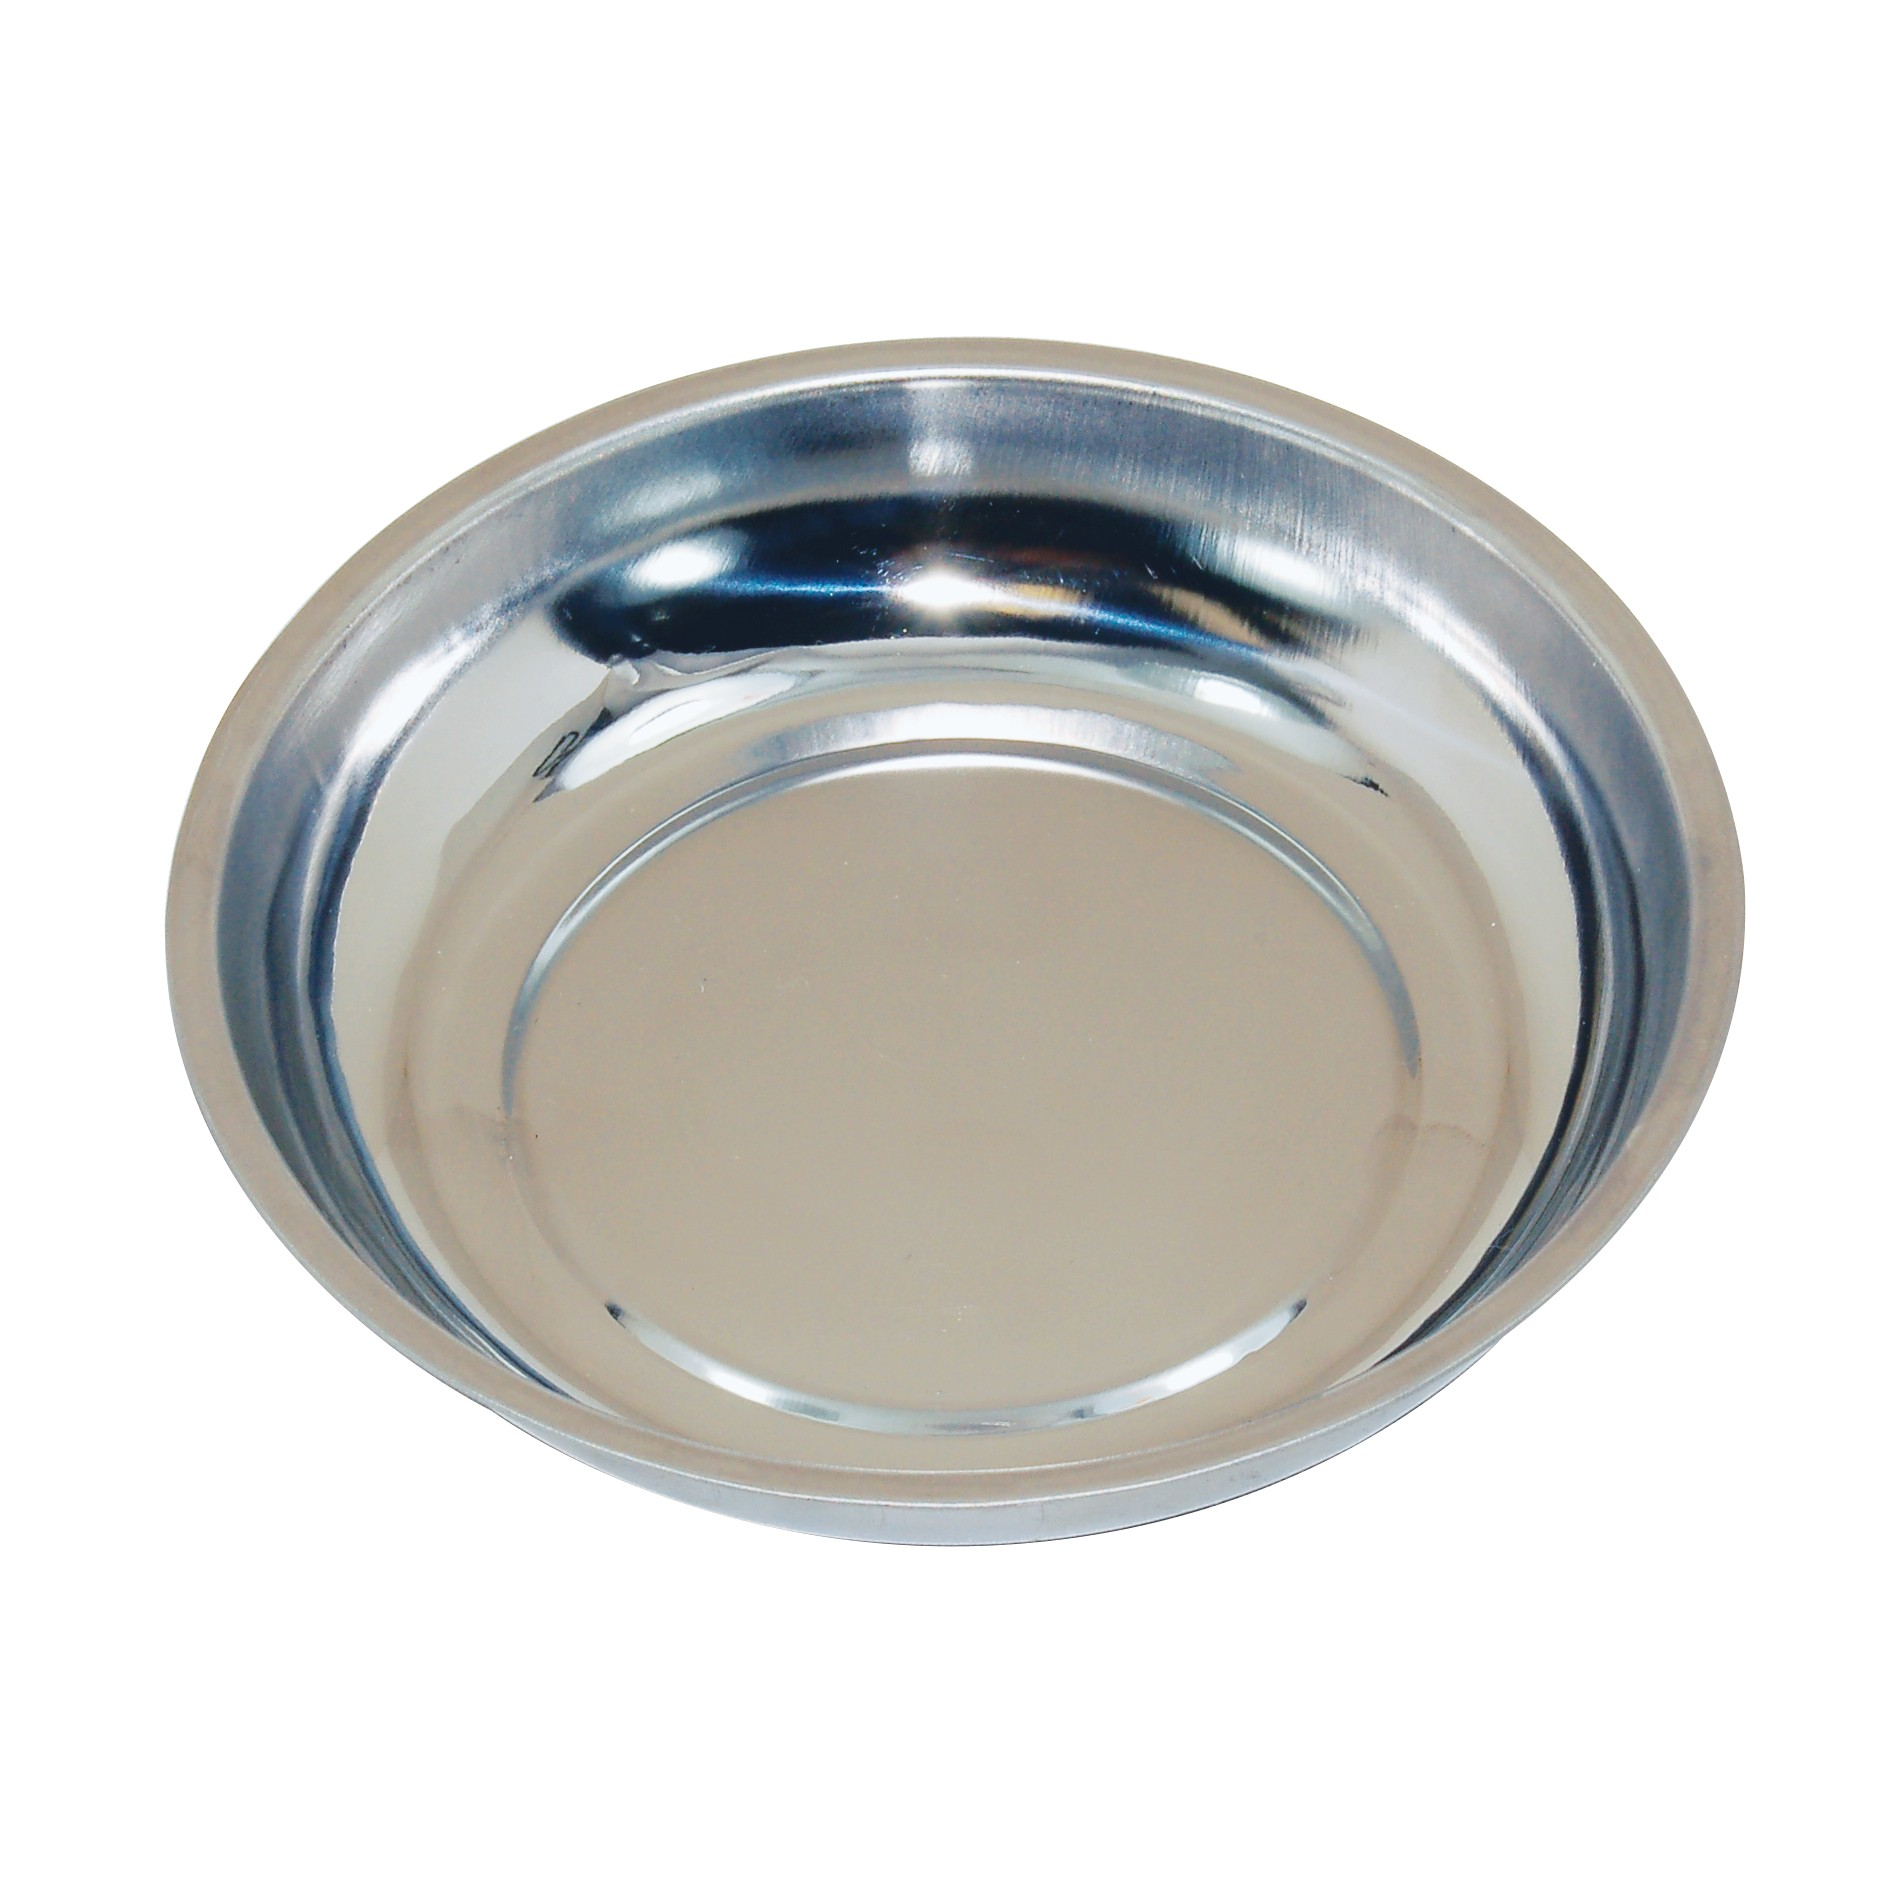 "Magnetic Parts Dish - 4"" Diameter"